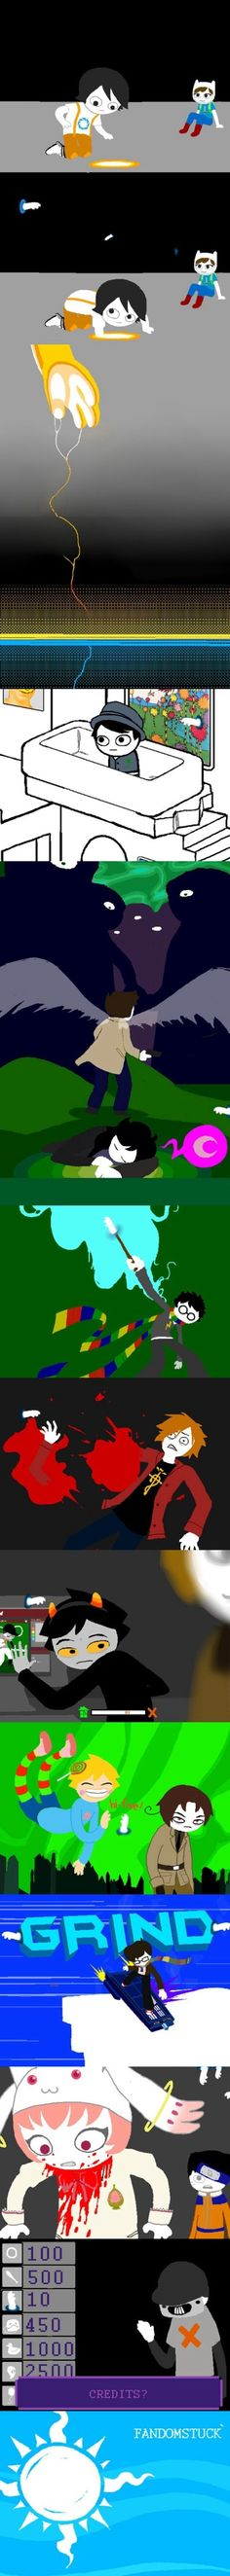 THIS IS AMAZING. Homestuck scenes redone with Fandomstuck- Portal & Adventure Time fandom, Onceler fandom, Supernatural protecting Derse dreamer!Sherlock fandom (my favorite) Harry Potter fandom, FMA fandom, Homestuck and Hetslia fandom, and then their trickster and 2p! modes, OFF fandom, Doctor Who fandom, and the Madoka and Naruto fandom. Major applause to whoever made this.